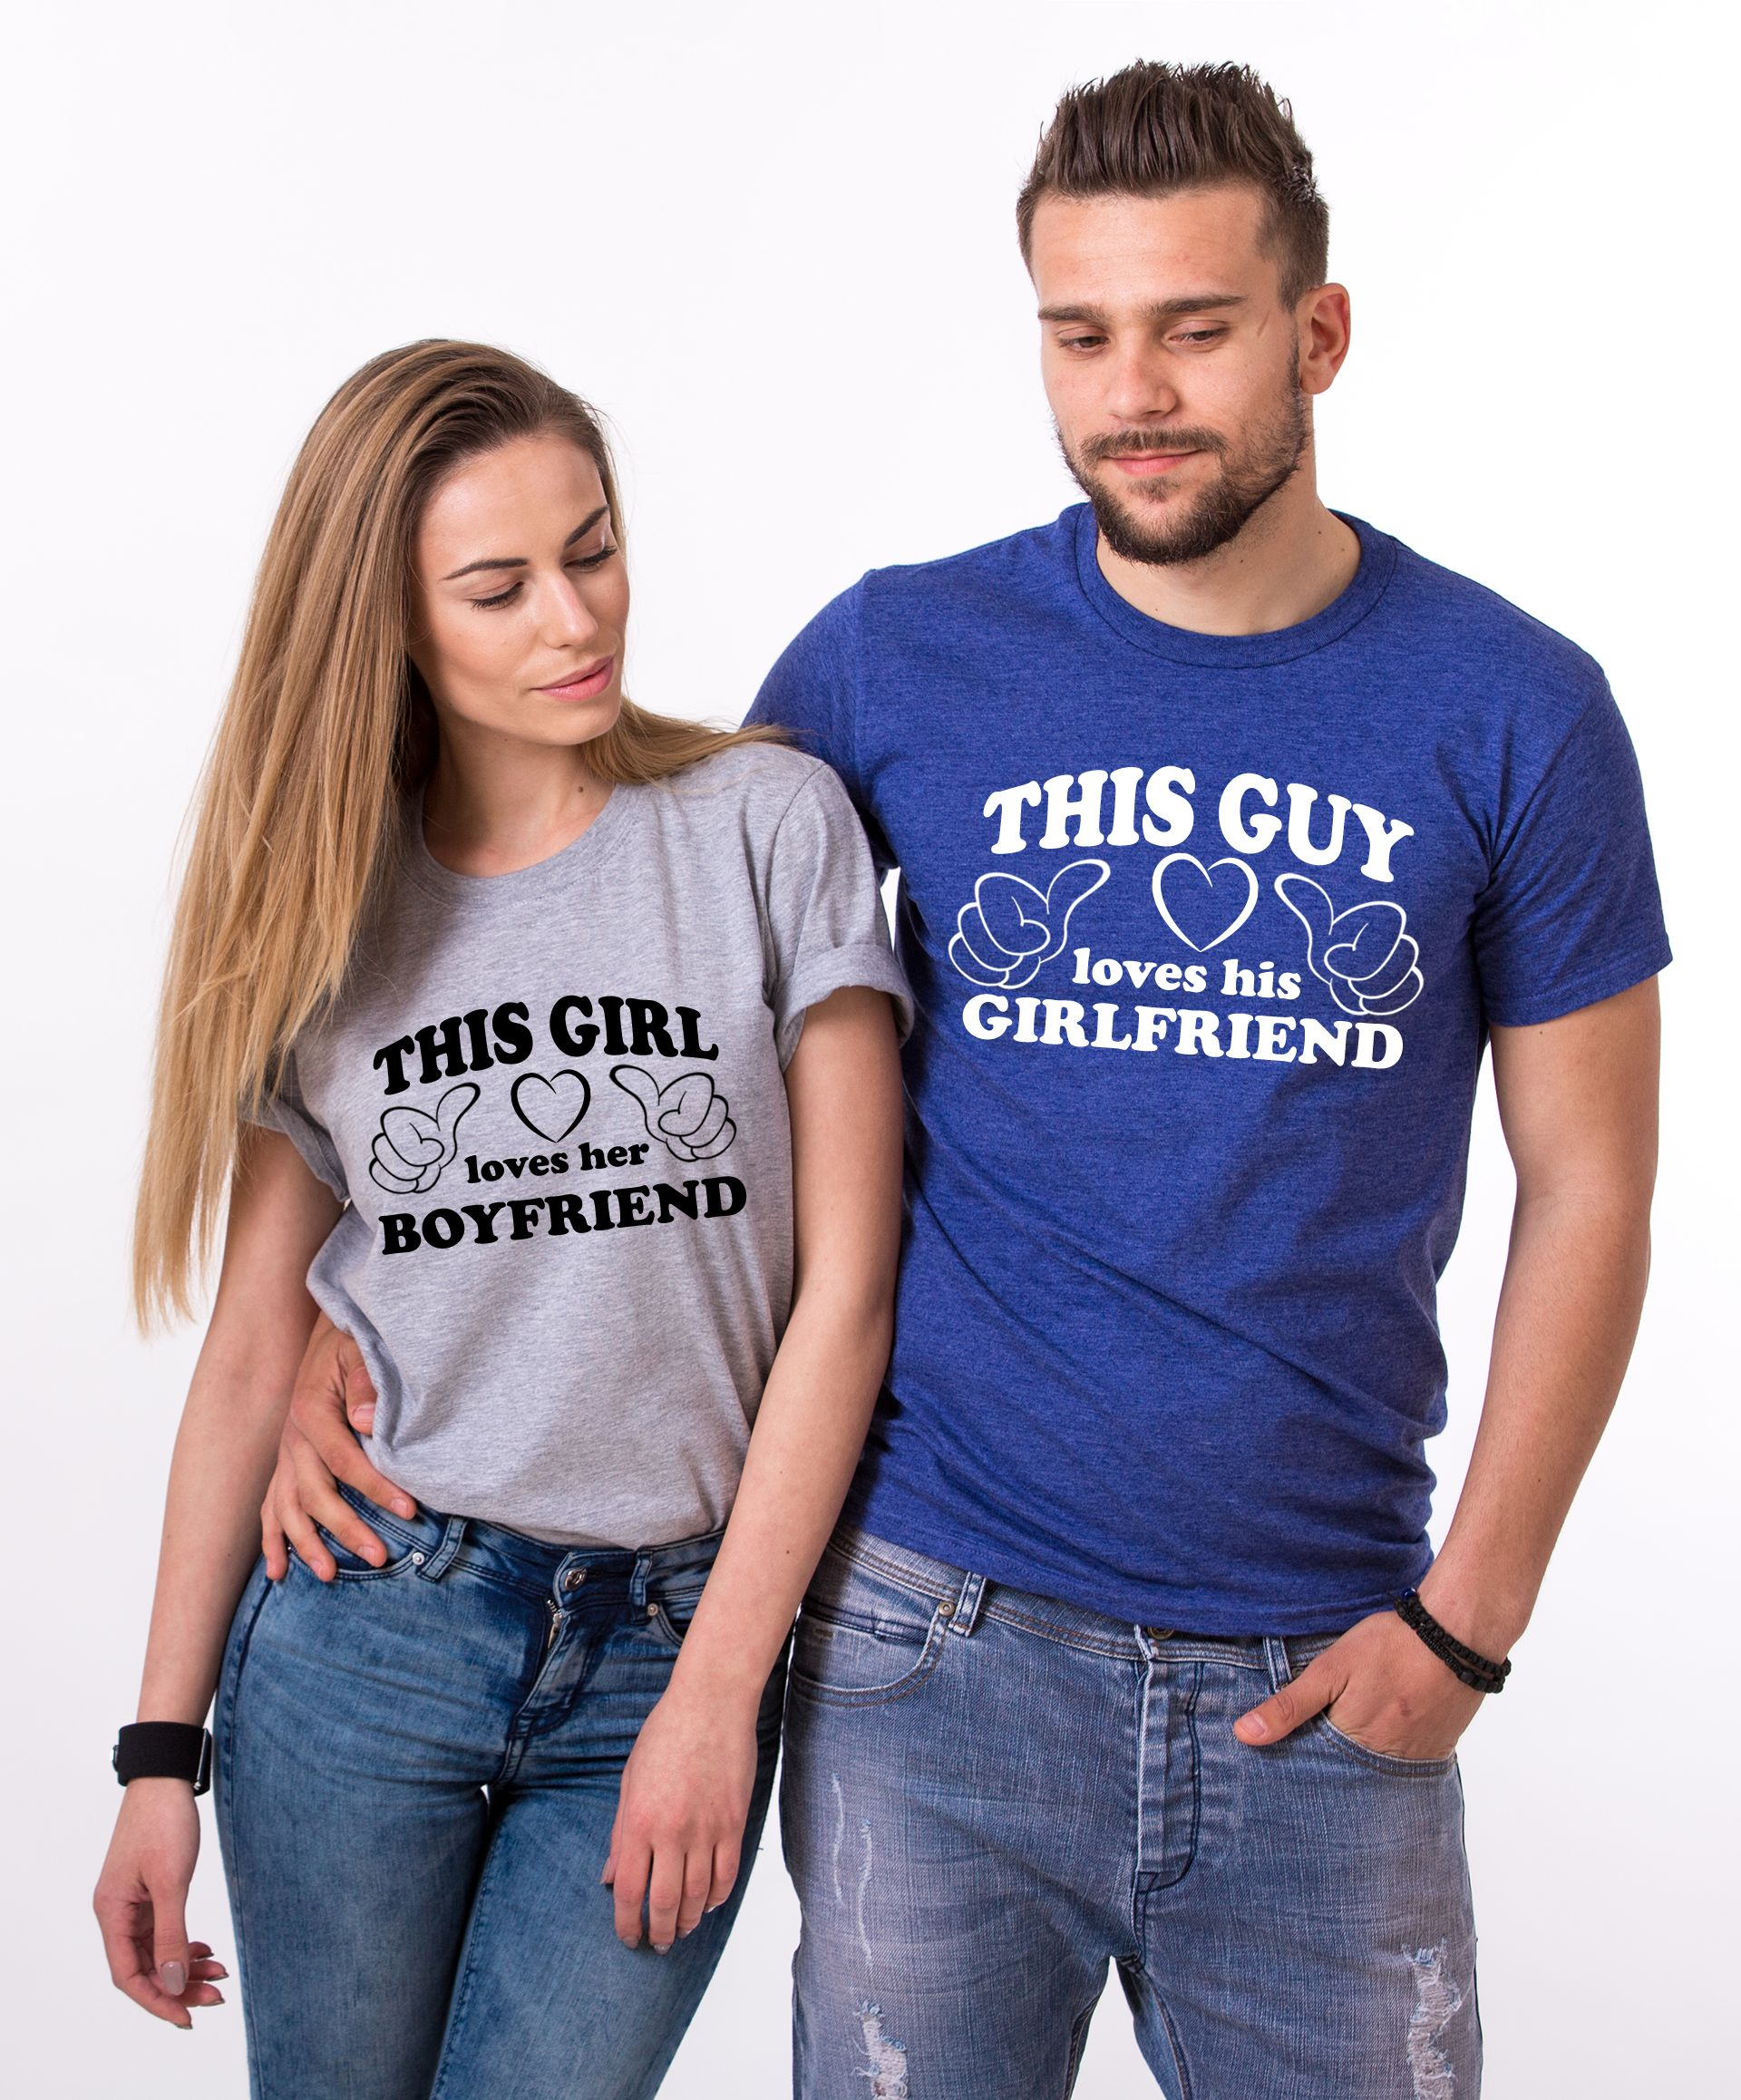 Couple Shirts, This Guy Loves His Girlfriend, This Girl Loves Her Boyfriend-1218